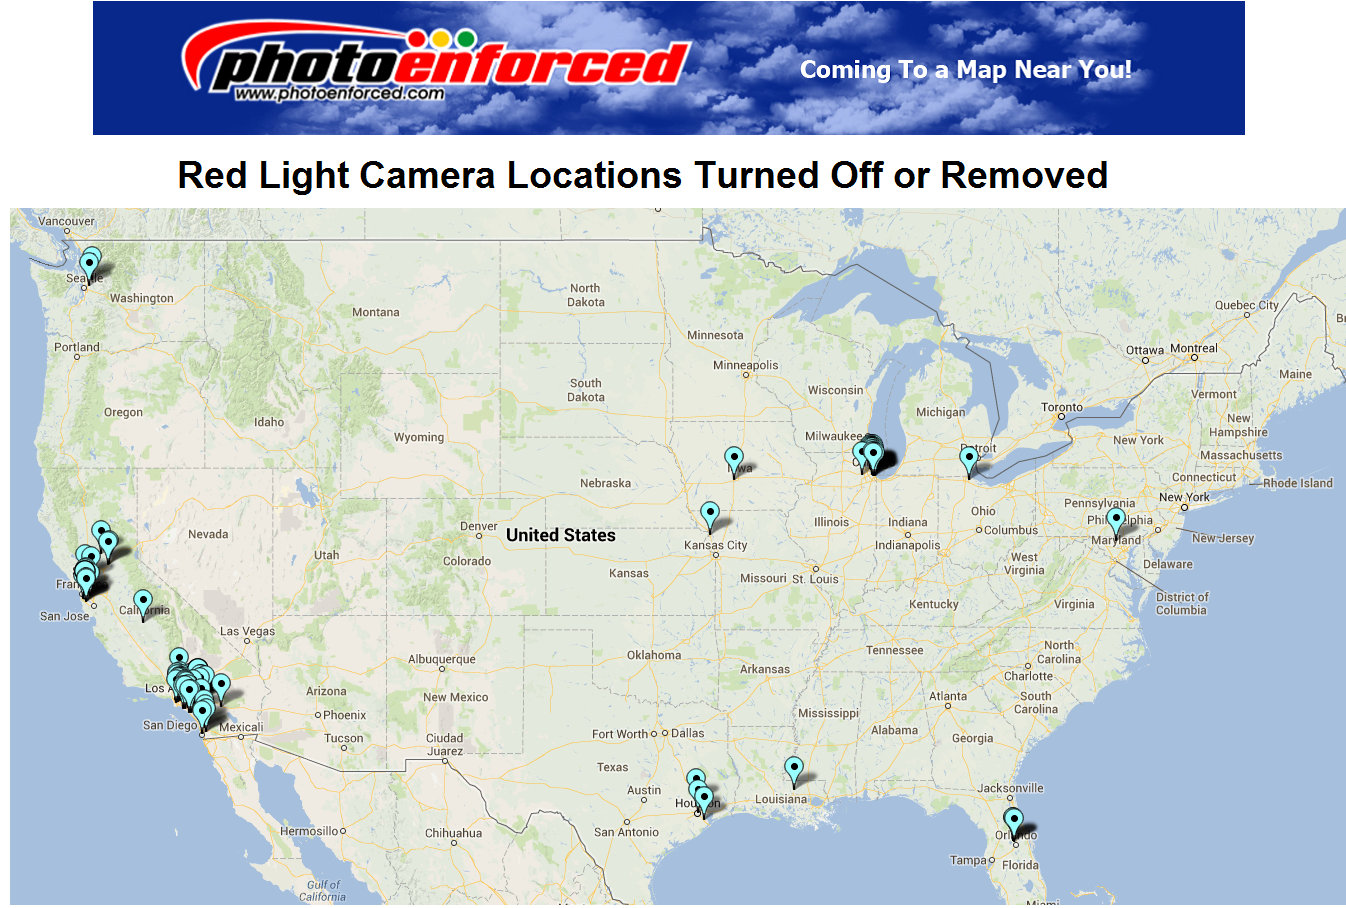 Enforced Map of Cities That Have Removed Red Light Camera